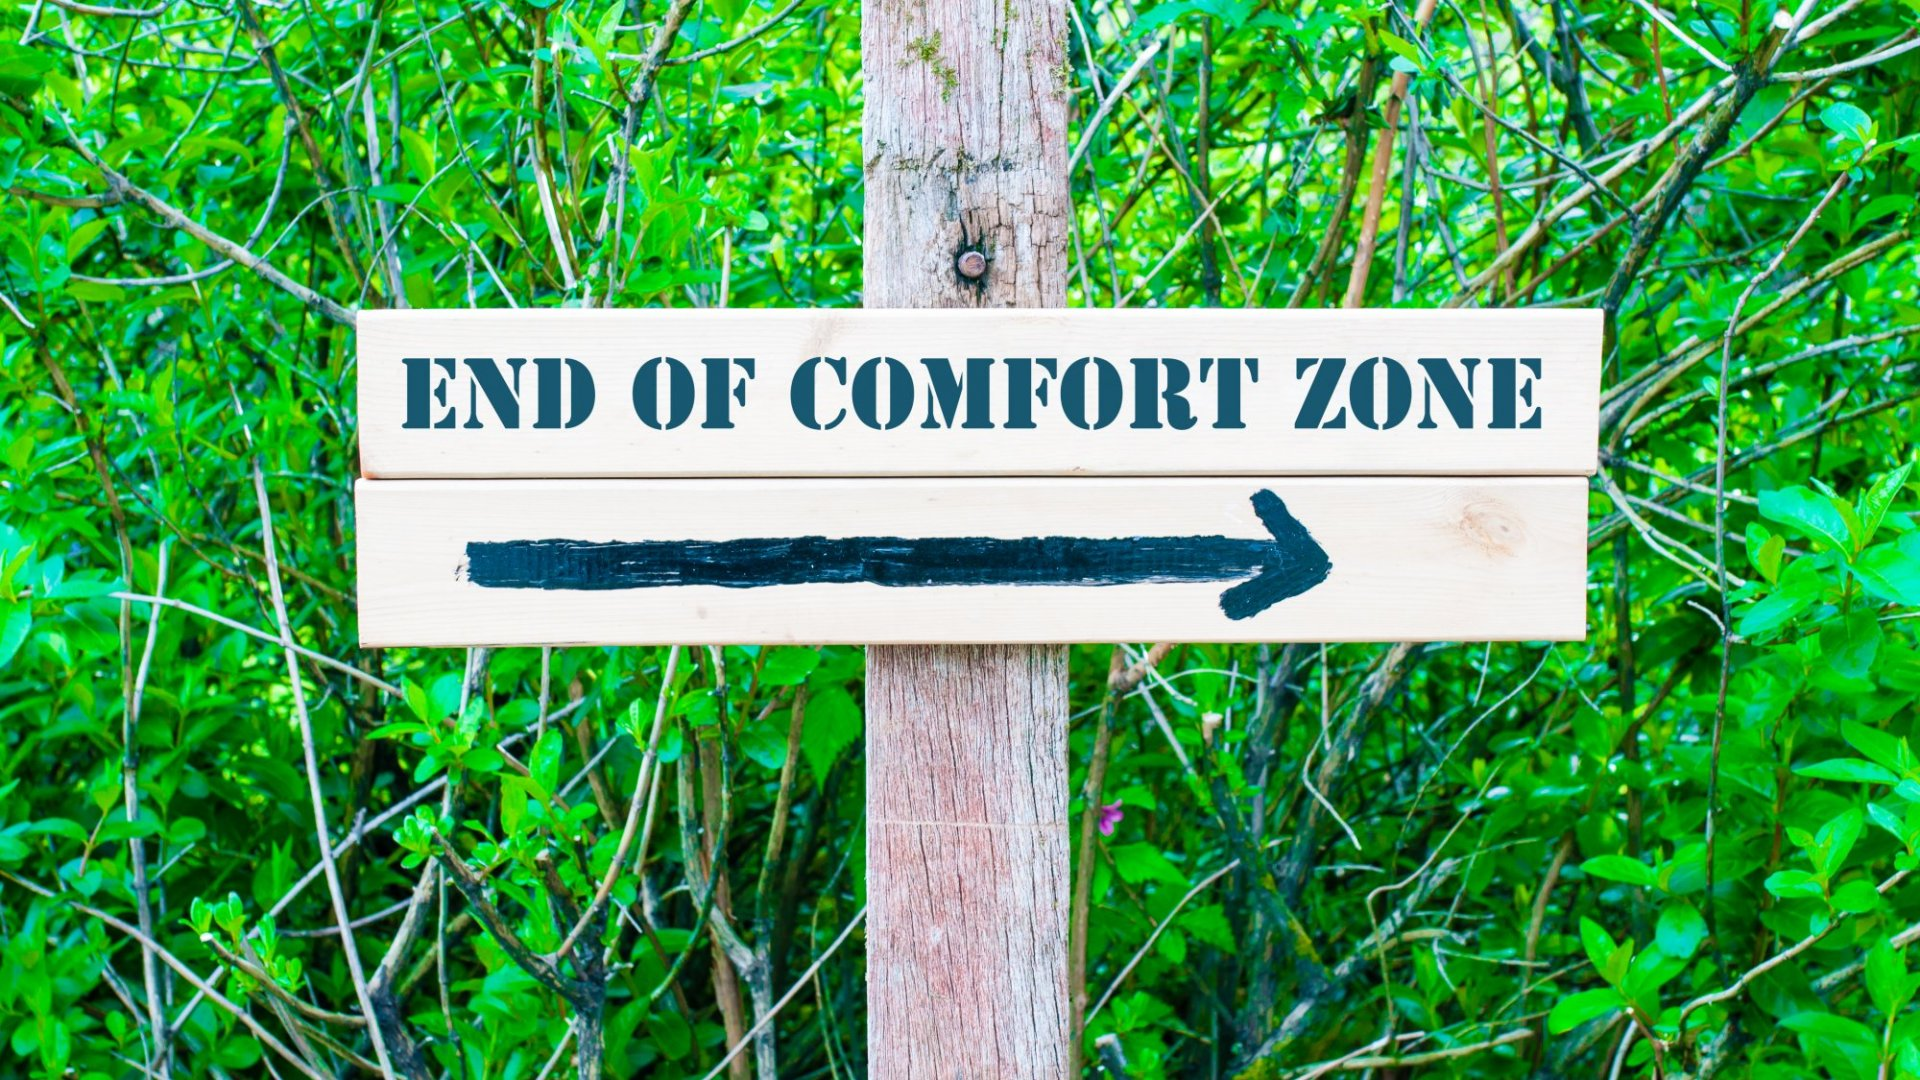 Want to Get Outside Your Comfort Zone? Ask Yourself These 3 Simple Questions